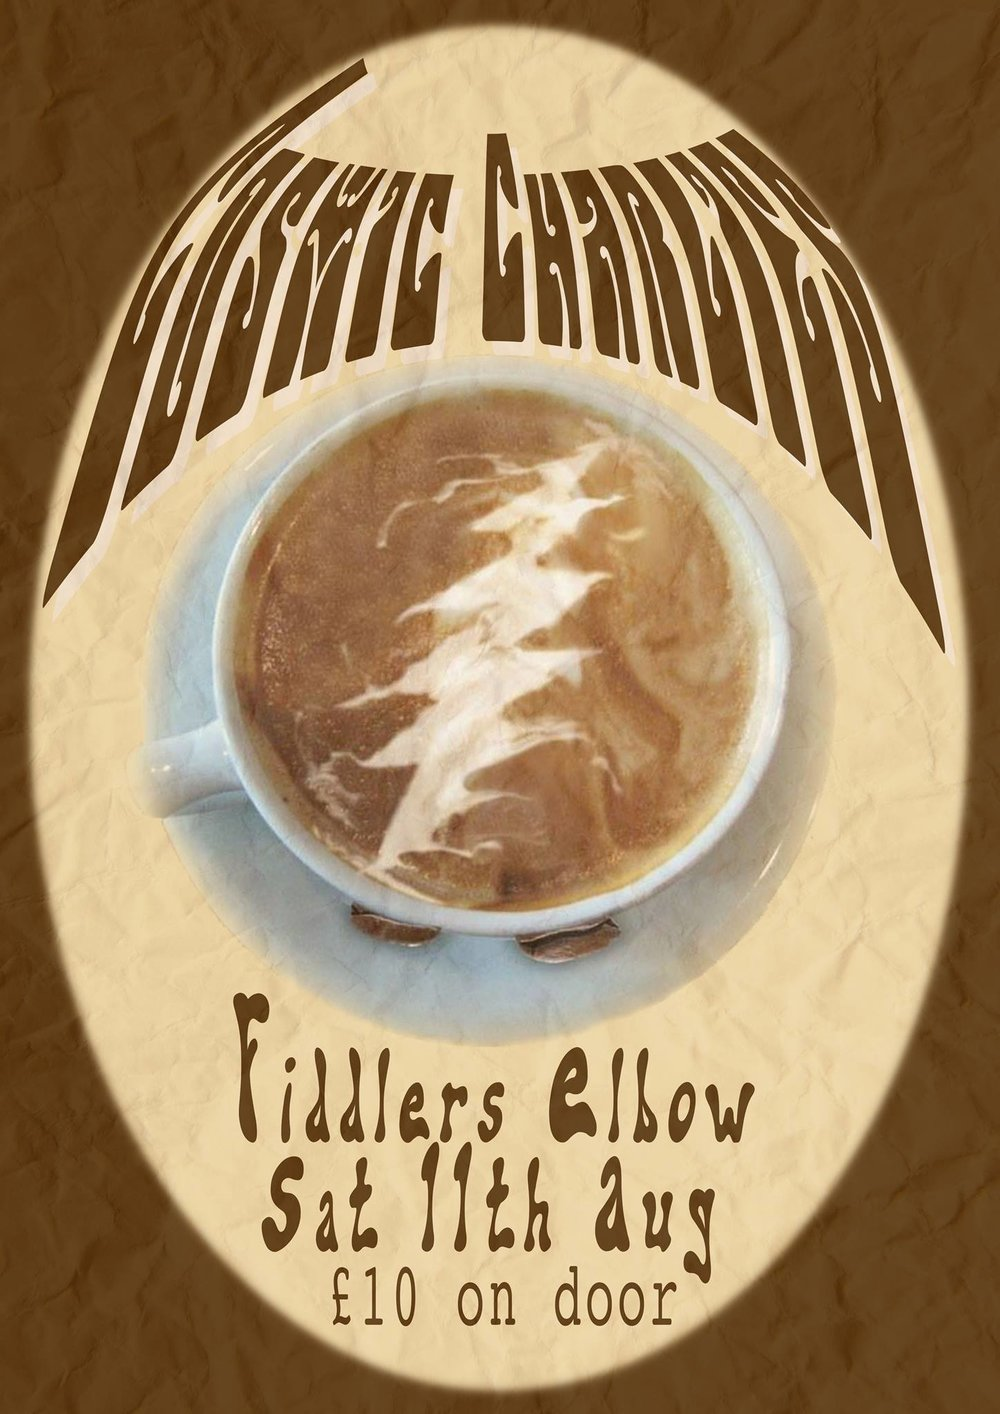 Chill with the Charlies - Grateful Dead at The Fiddler's Elbow promotional image